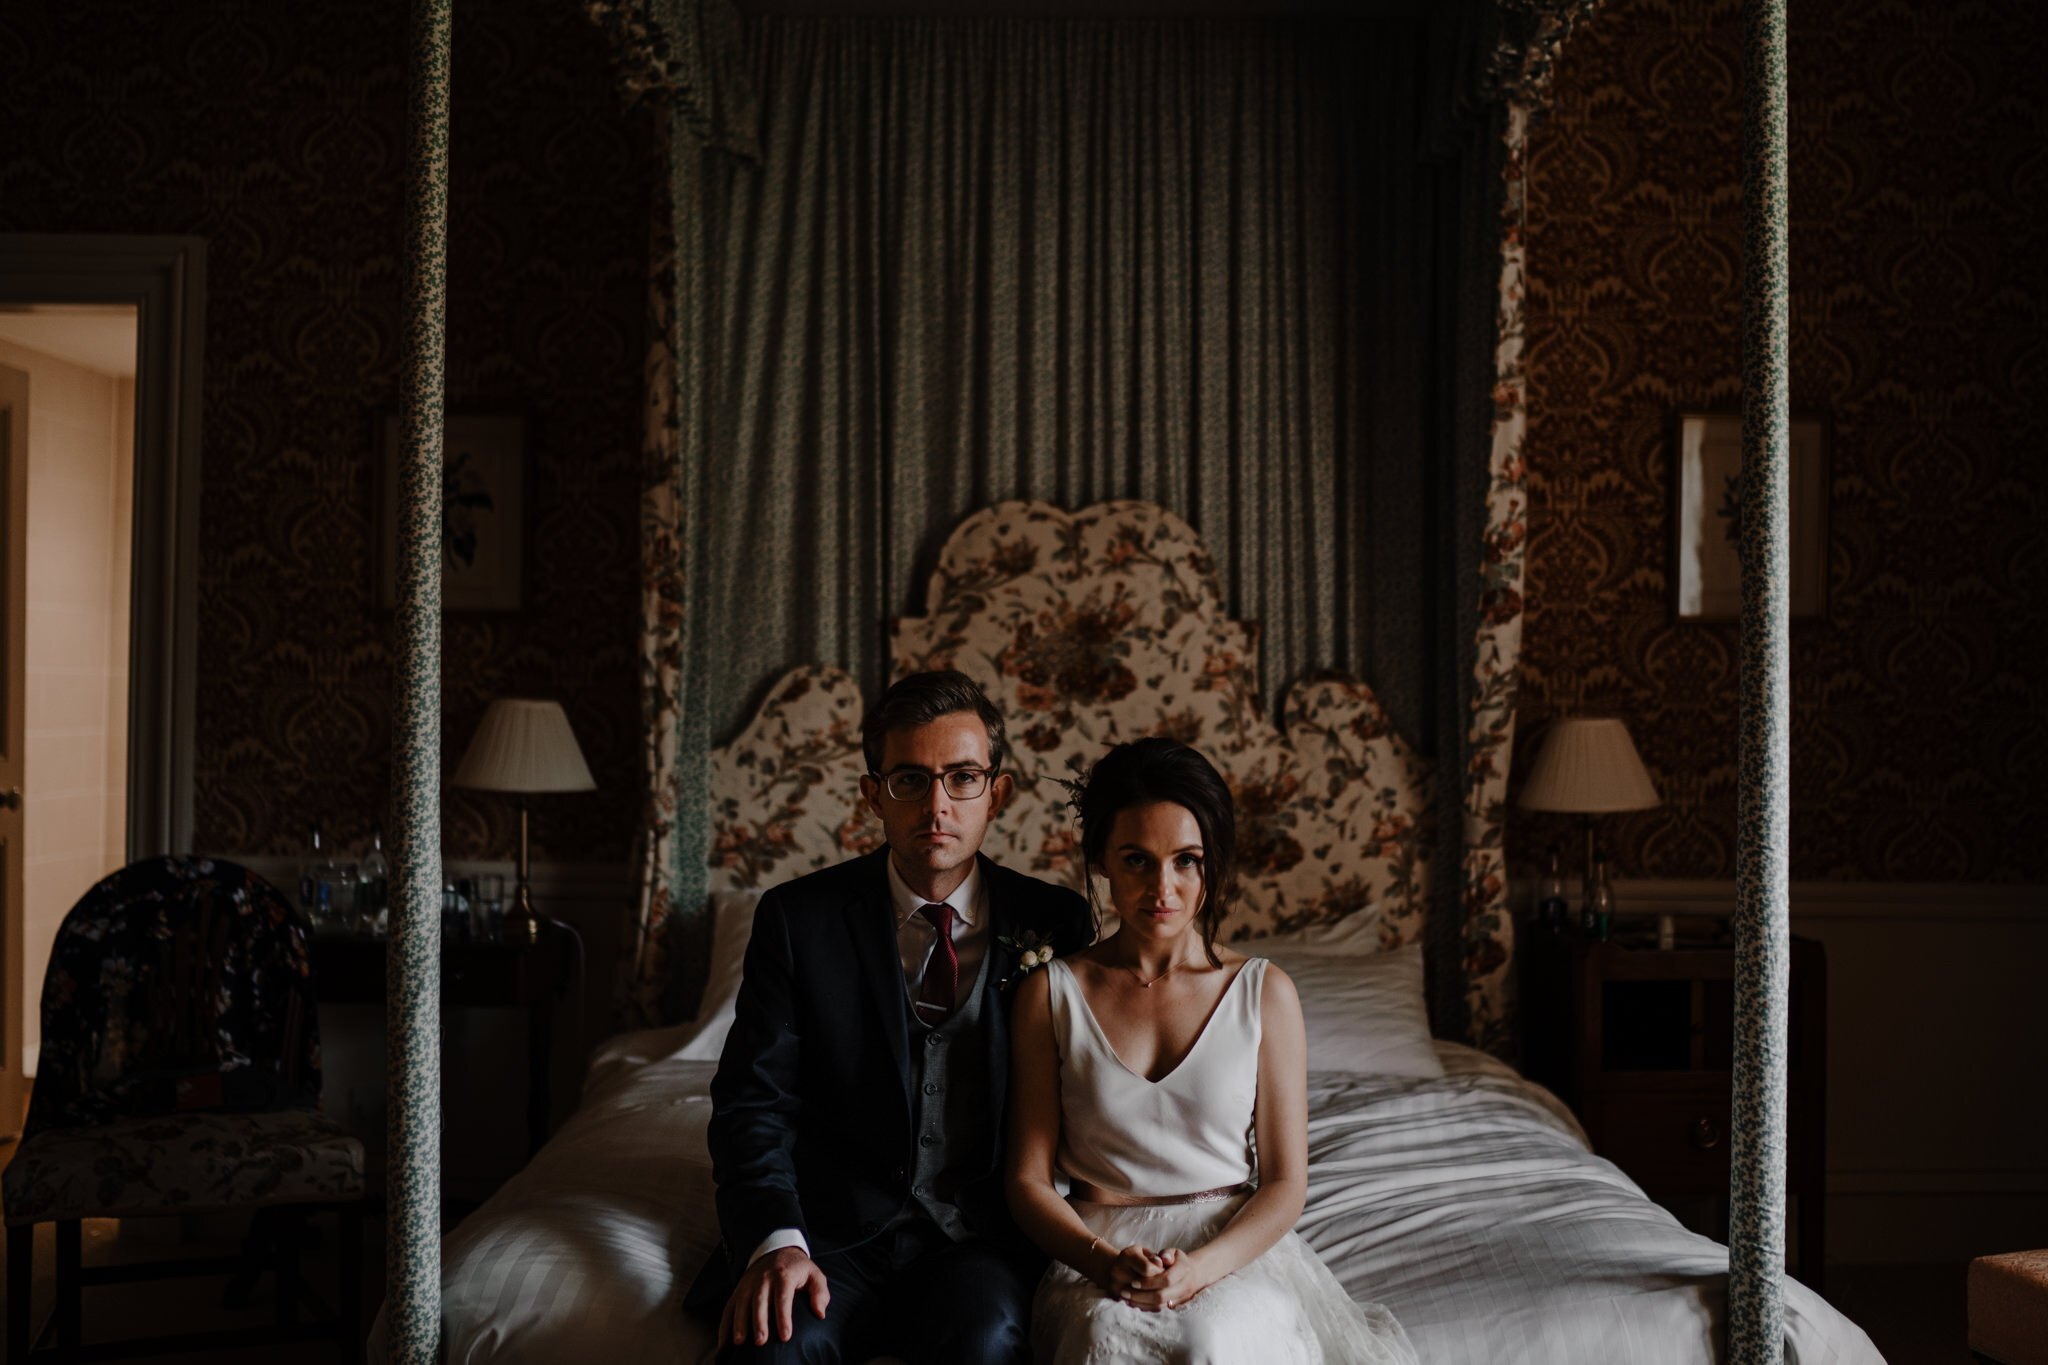 L&l - Intimate wedding crom castle